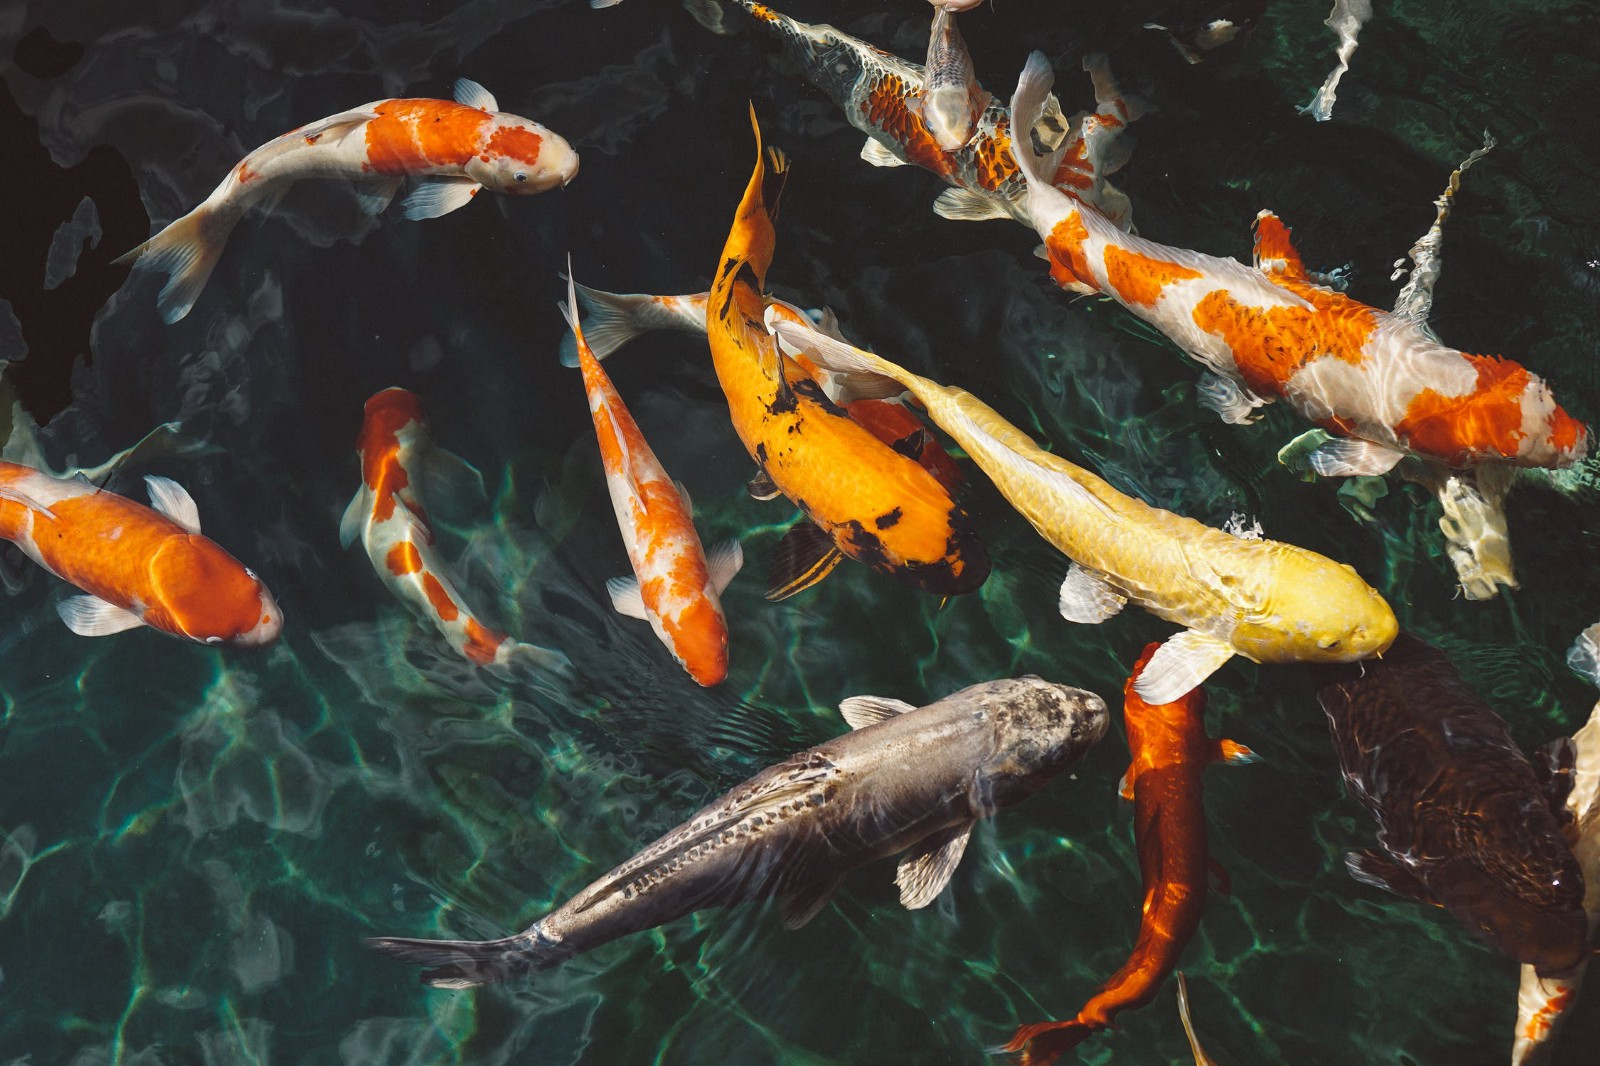 Fish in the pond dating